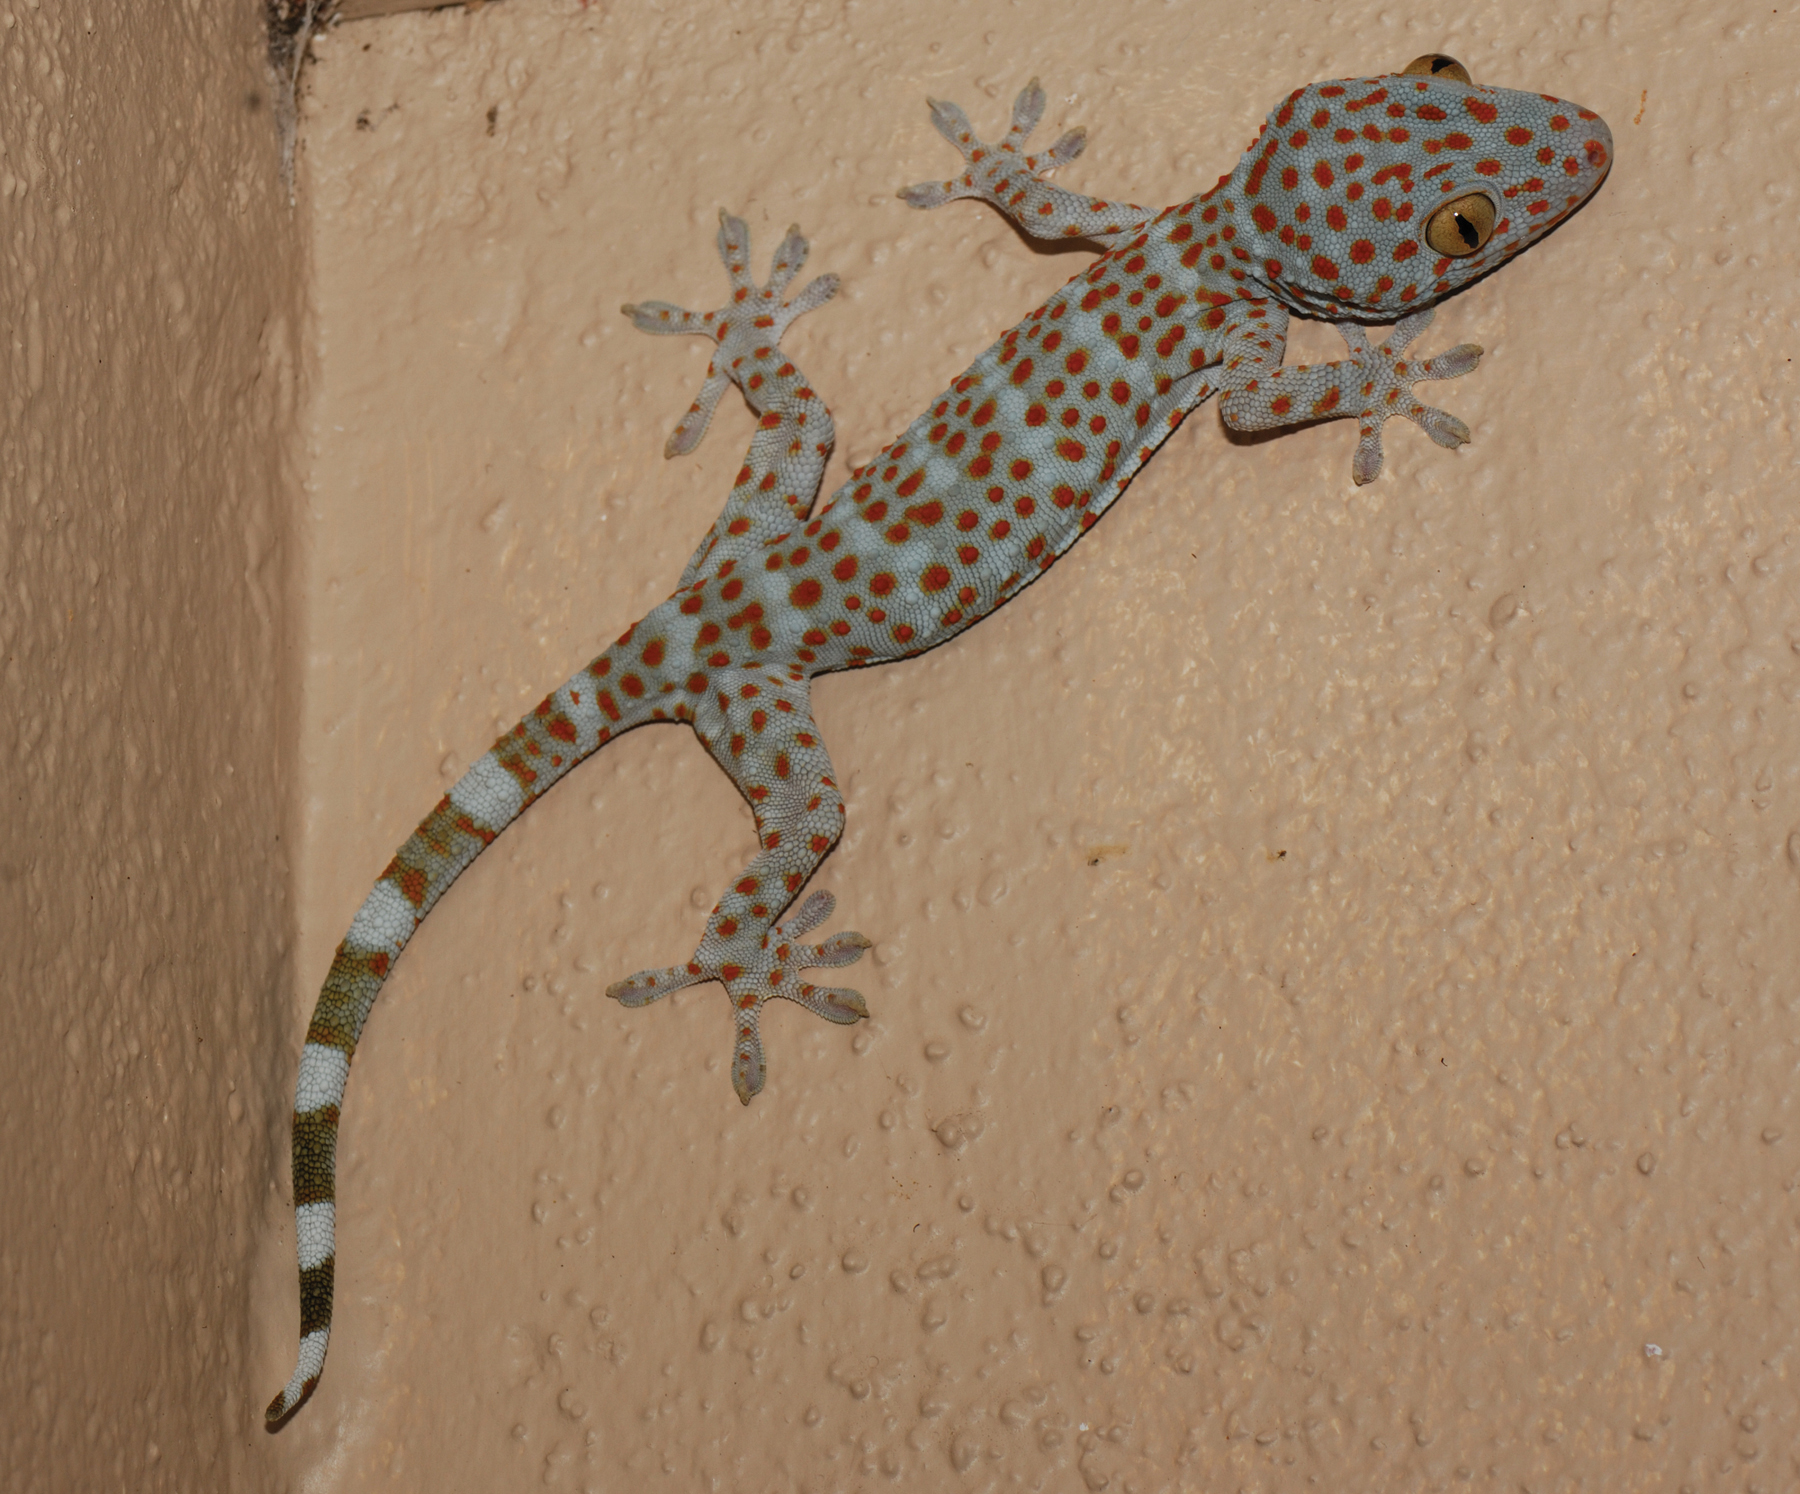 wild thing: q&a from geckos: the animal answer guide | johns